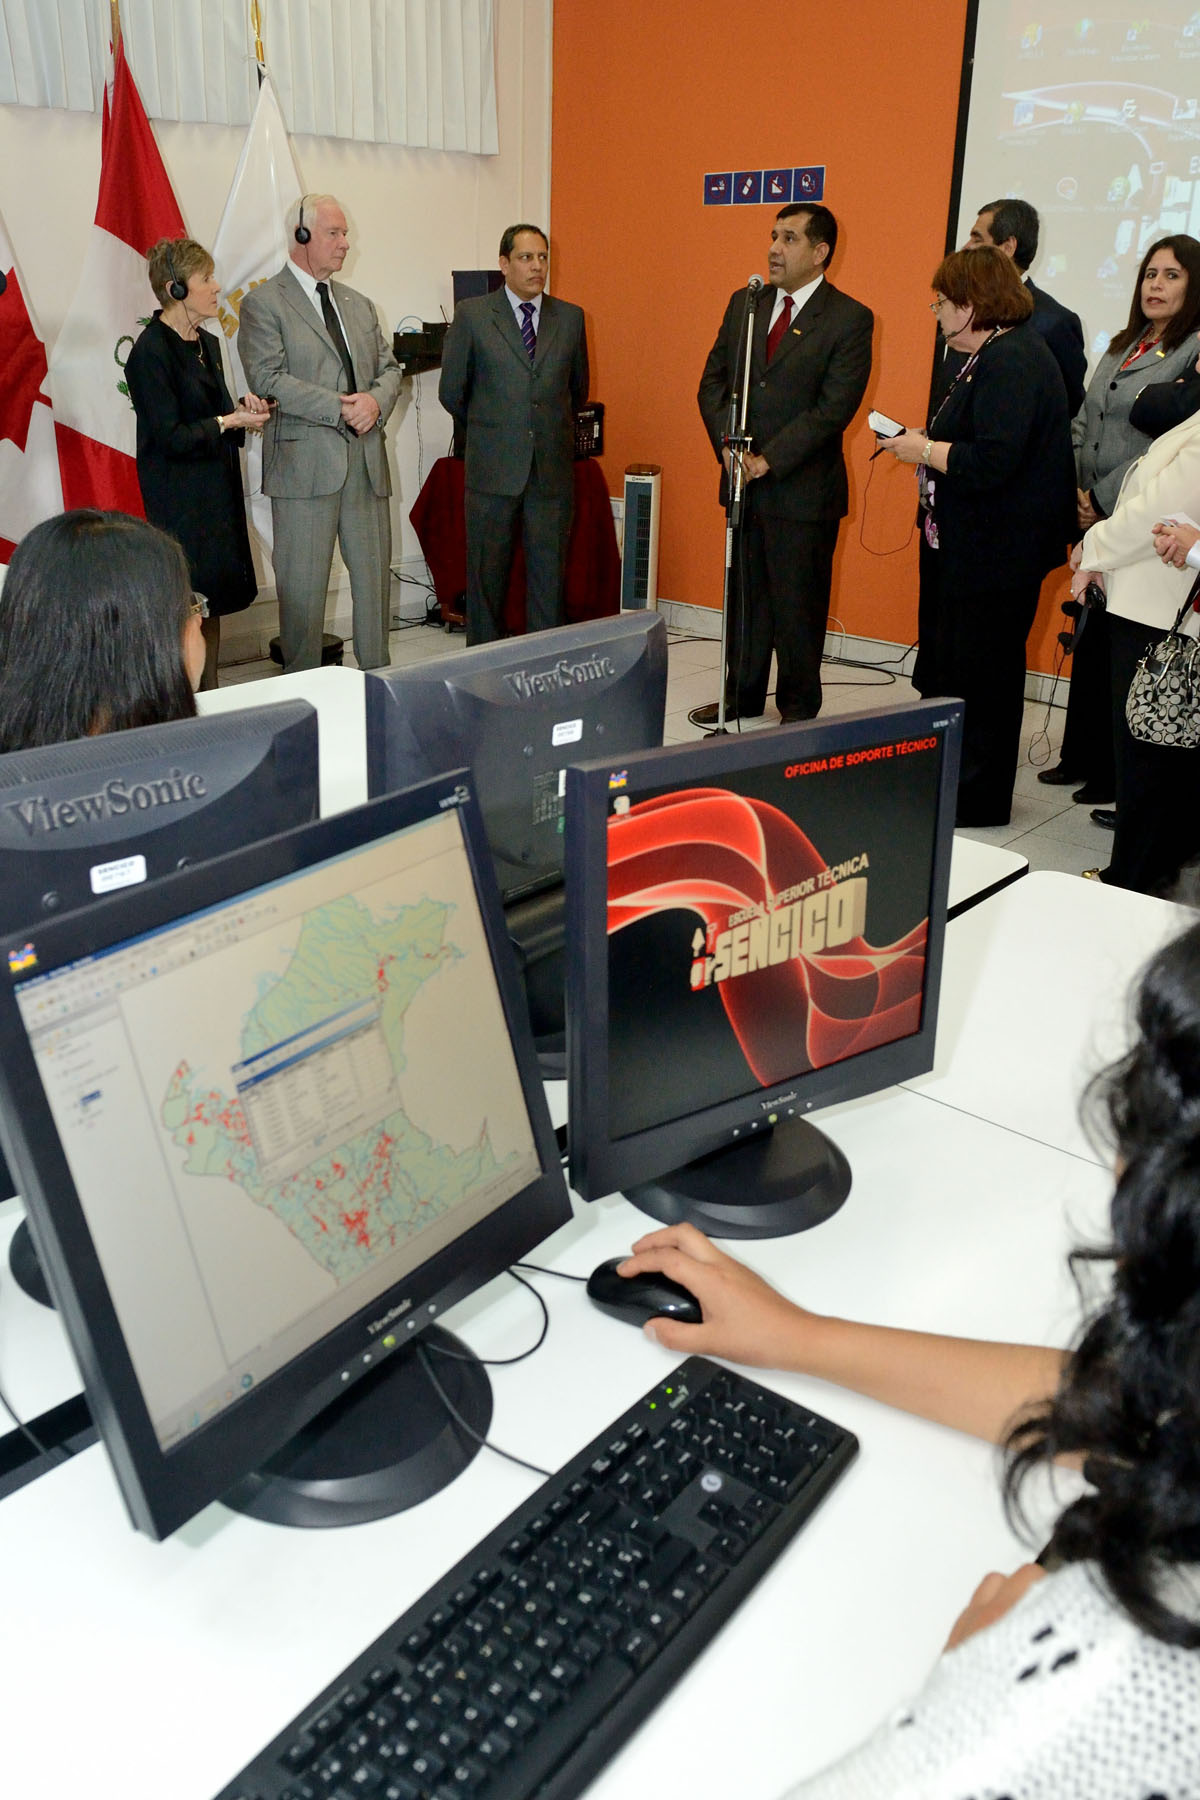 His Excellency learned how Canadian geomatics technology and knowledge was transferred to the Peruvian technical school through an alliance with the Cégep de Limoilou, in Québec, and with the support of CIDA via the Association of Canadian Community Colleges.